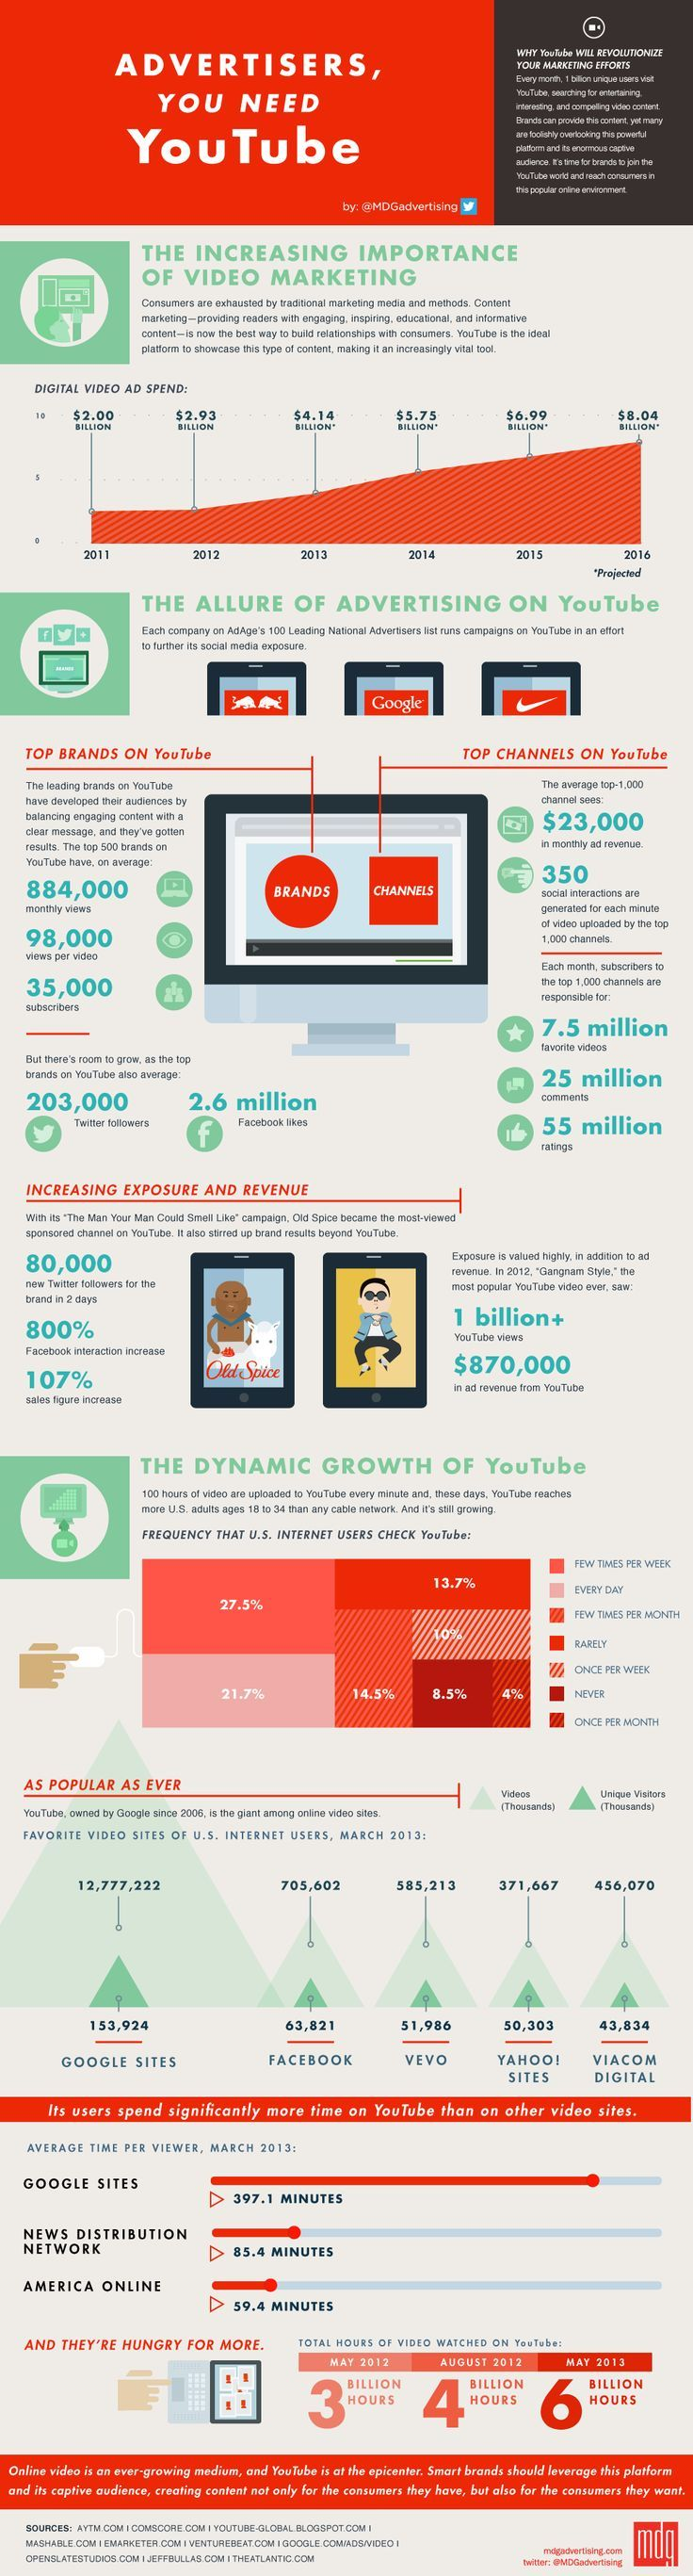 Advertising-Infographics-Advertisers-You-Need-YouTube-Infographic-Advertising Advertising Infographics : Advertisers You Need YouTube [Infographic] | Advertising on YouTube | Why Shoul ...